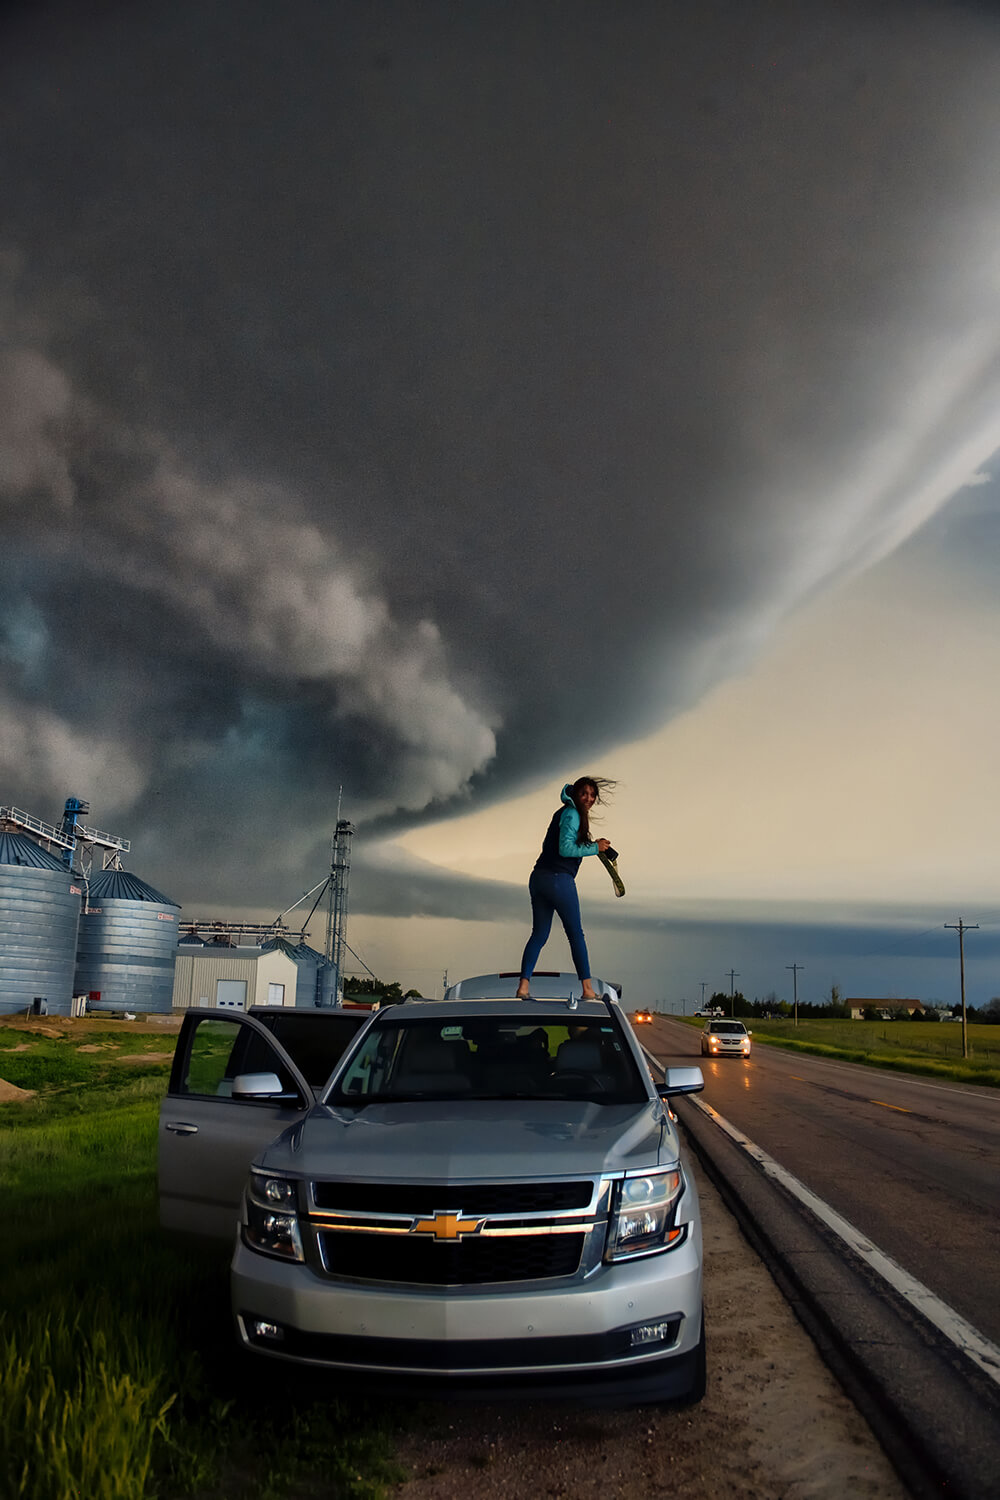 Photographer on top of a car shooting the tornado